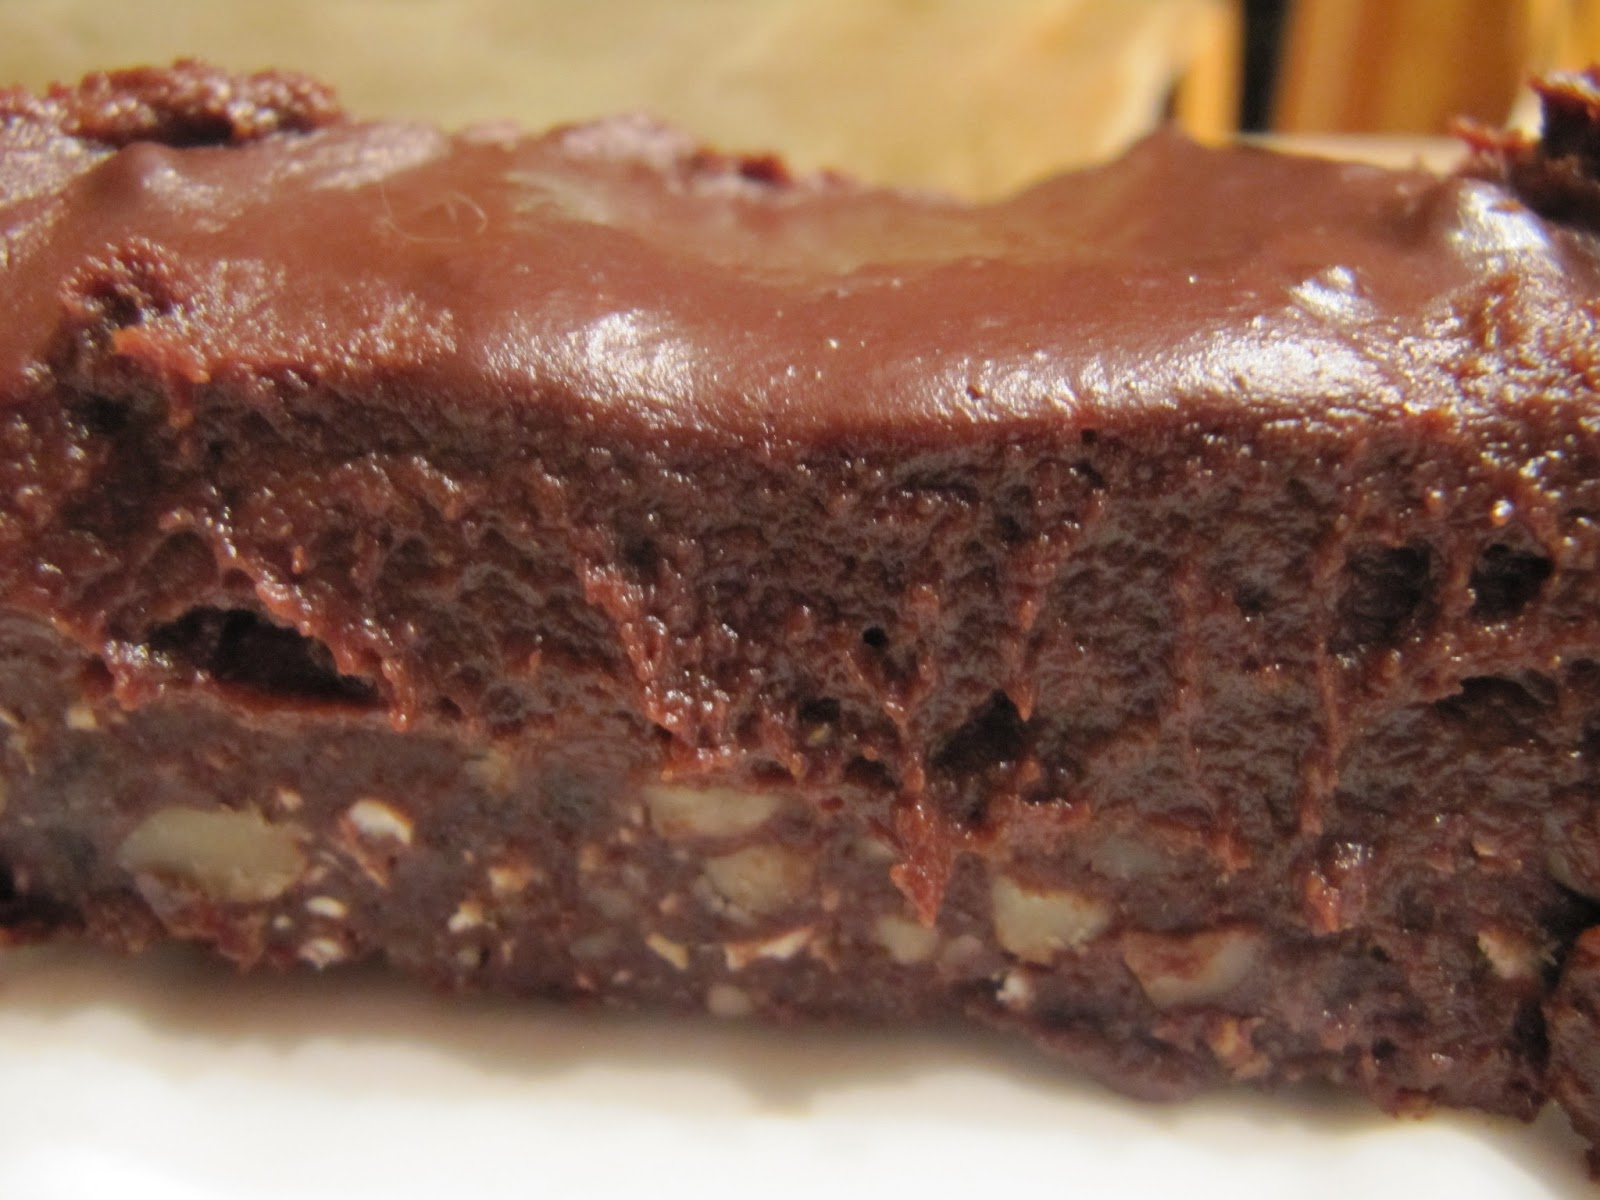 ... chocolate lovers decadent gooey rich no baking no flour no cups full